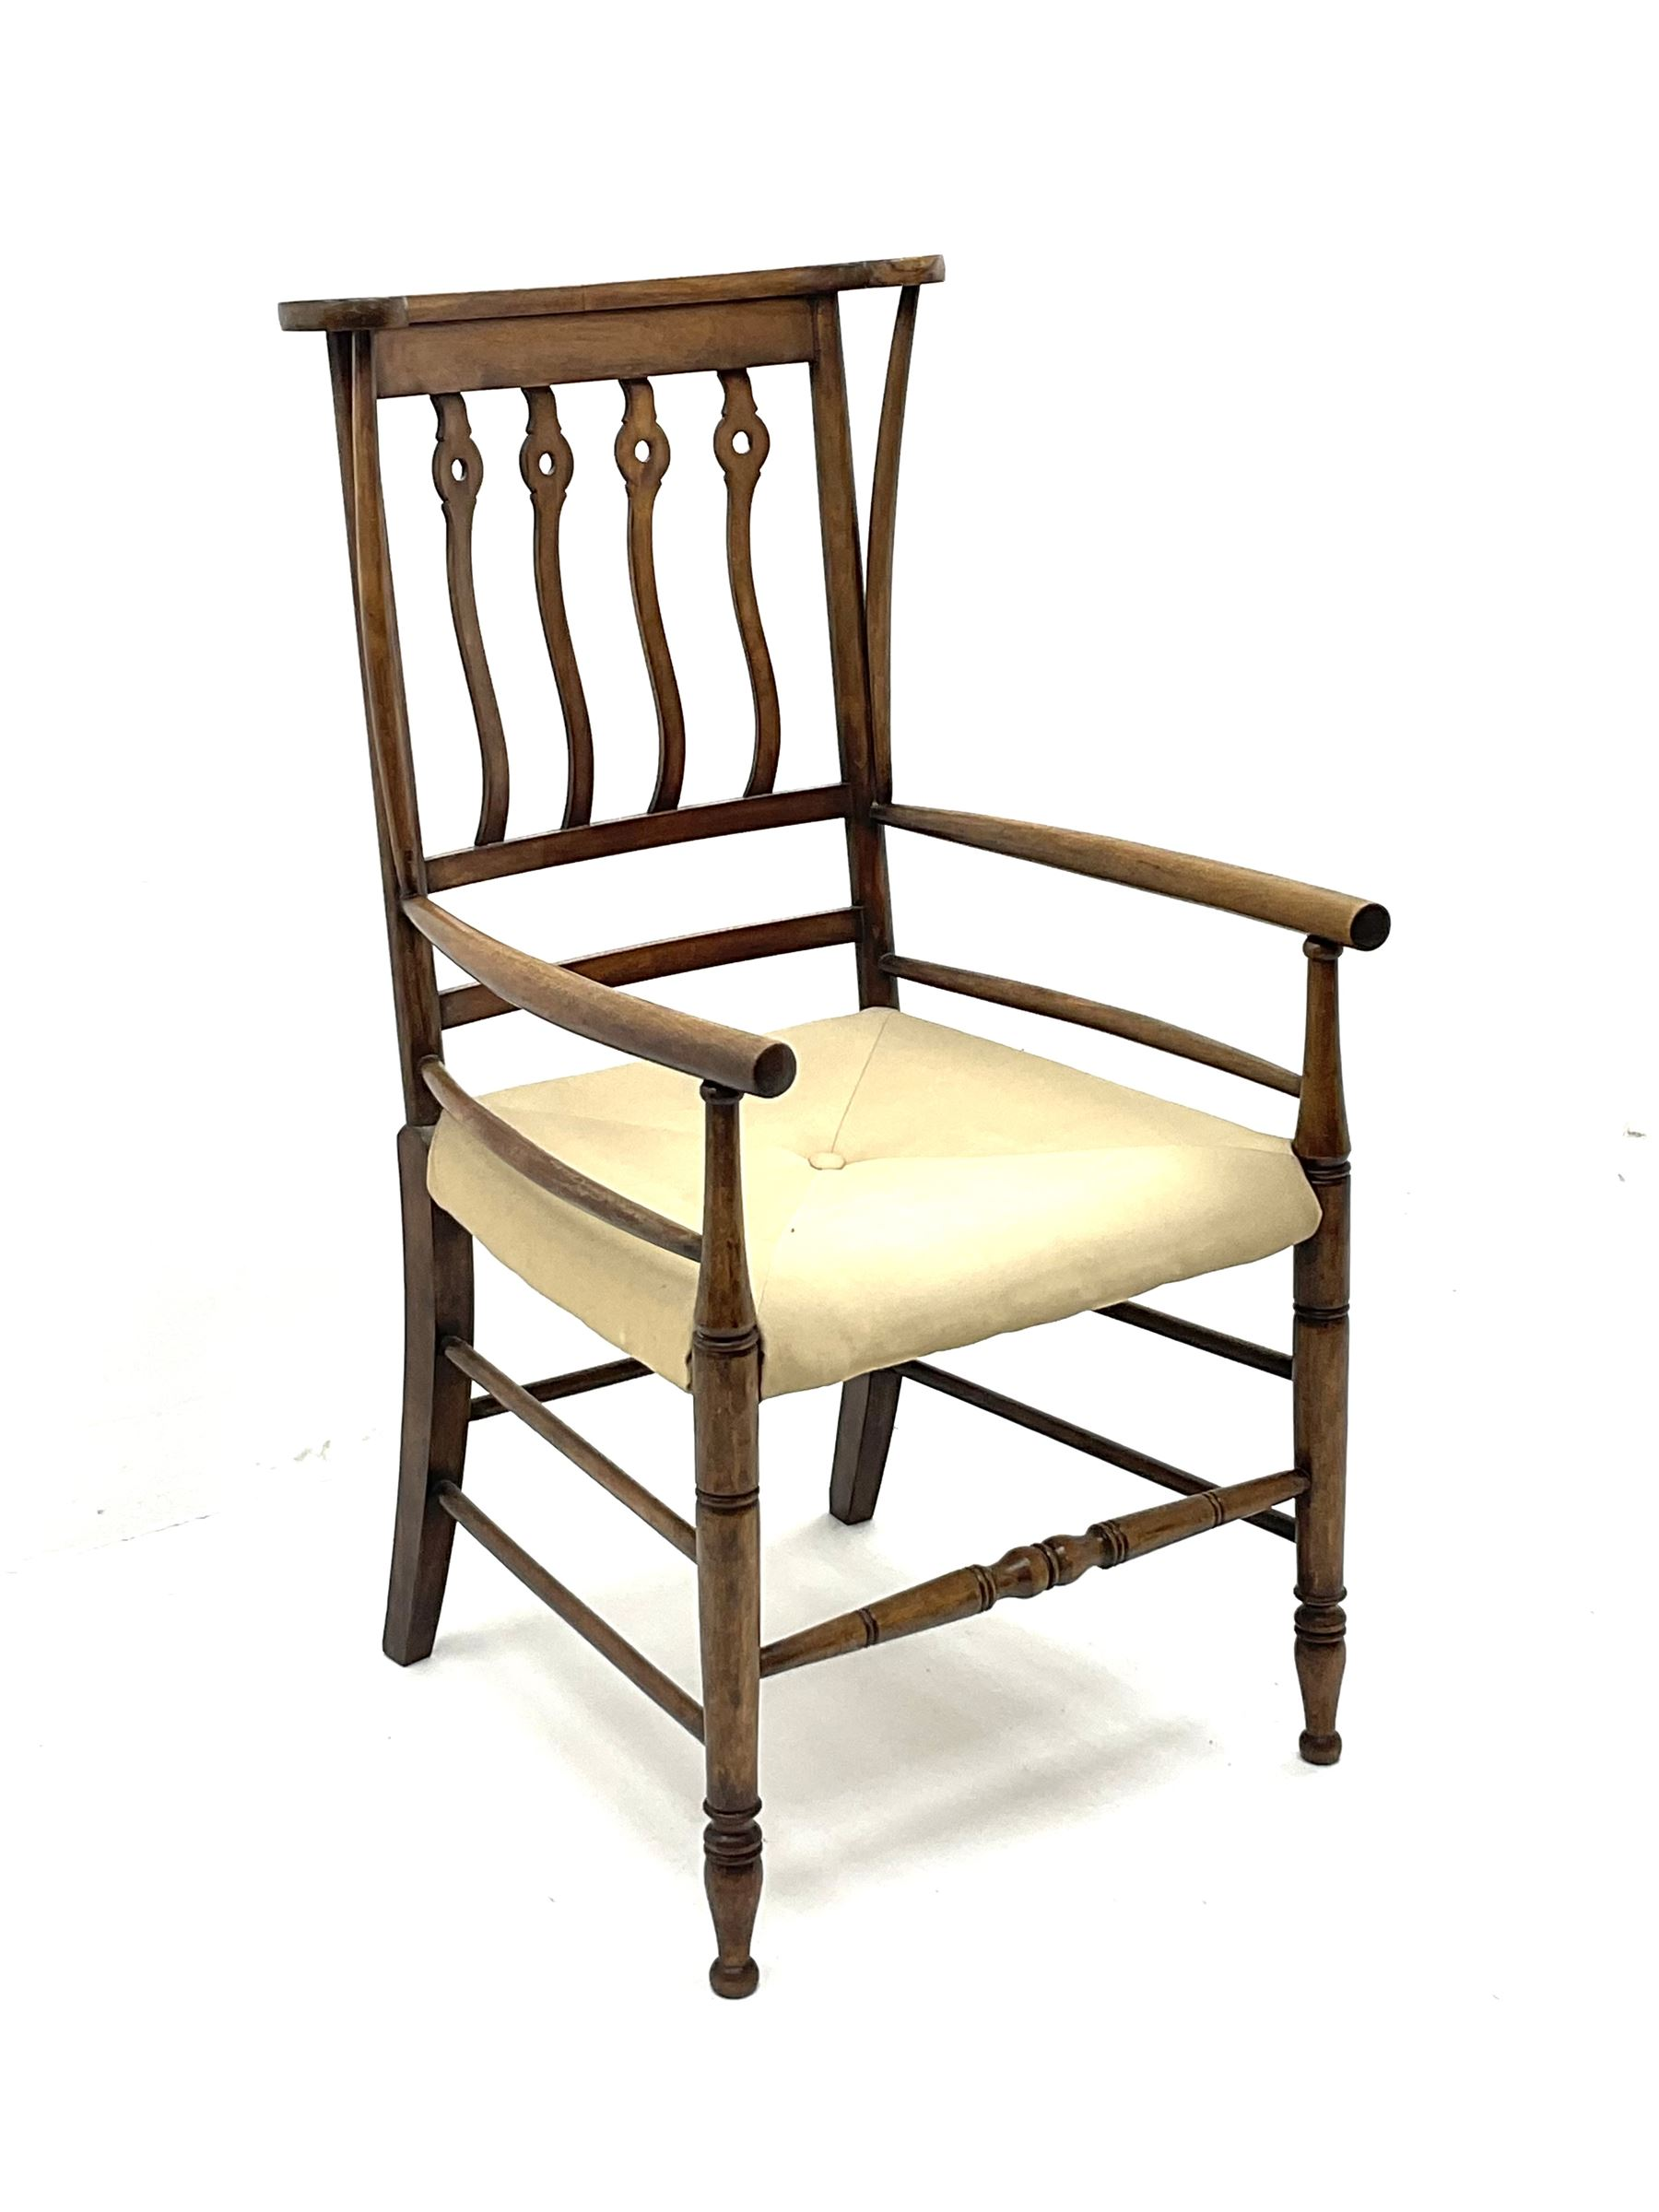 Early 20th century Arts and Crafts style fruitwood elbow chair - Image 2 of 3